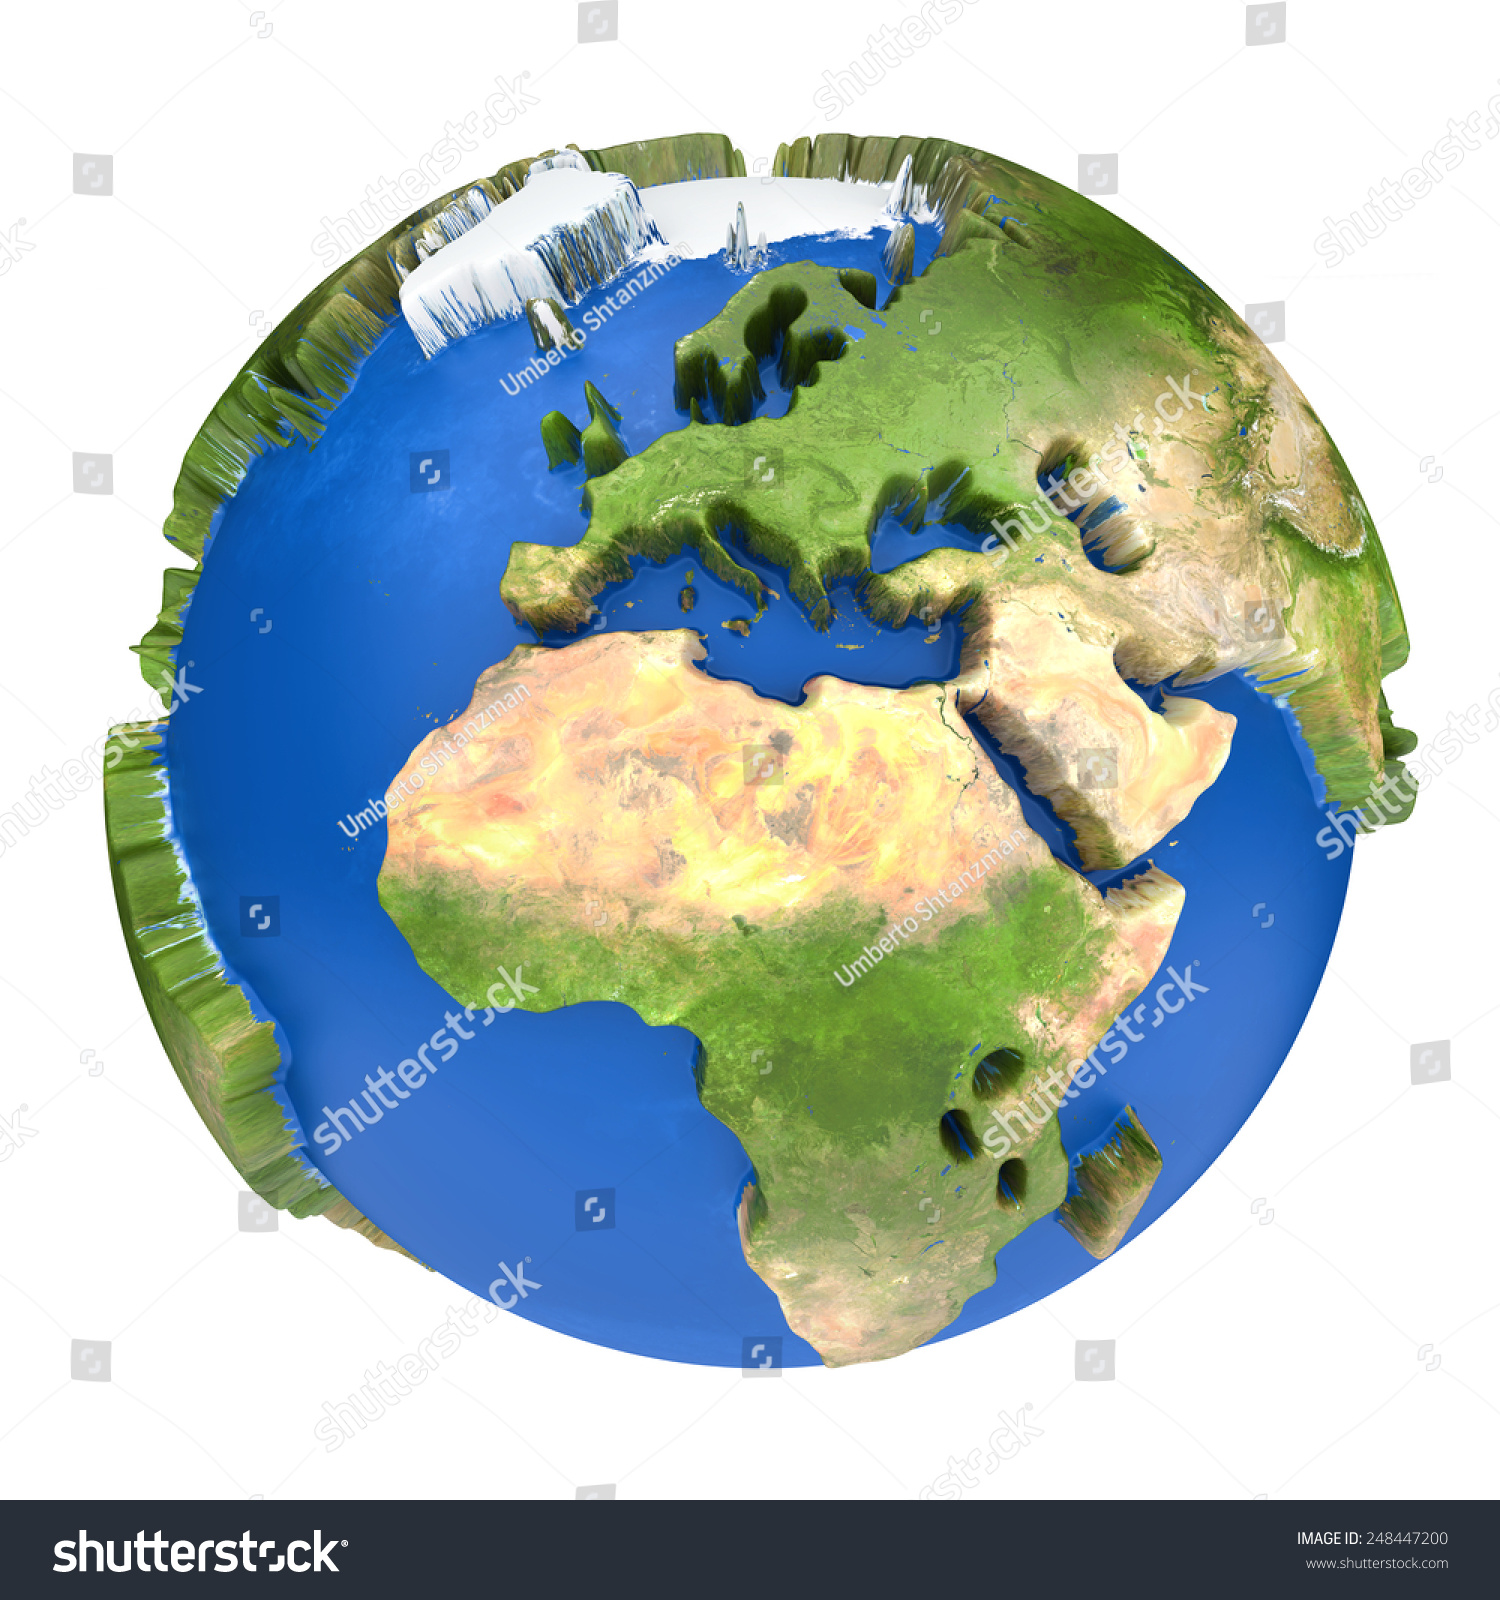 Earth world map africa europe on stock illustration 248447200 earth world map africa and europe on a planet globe 3d concept illustration gumiabroncs Images